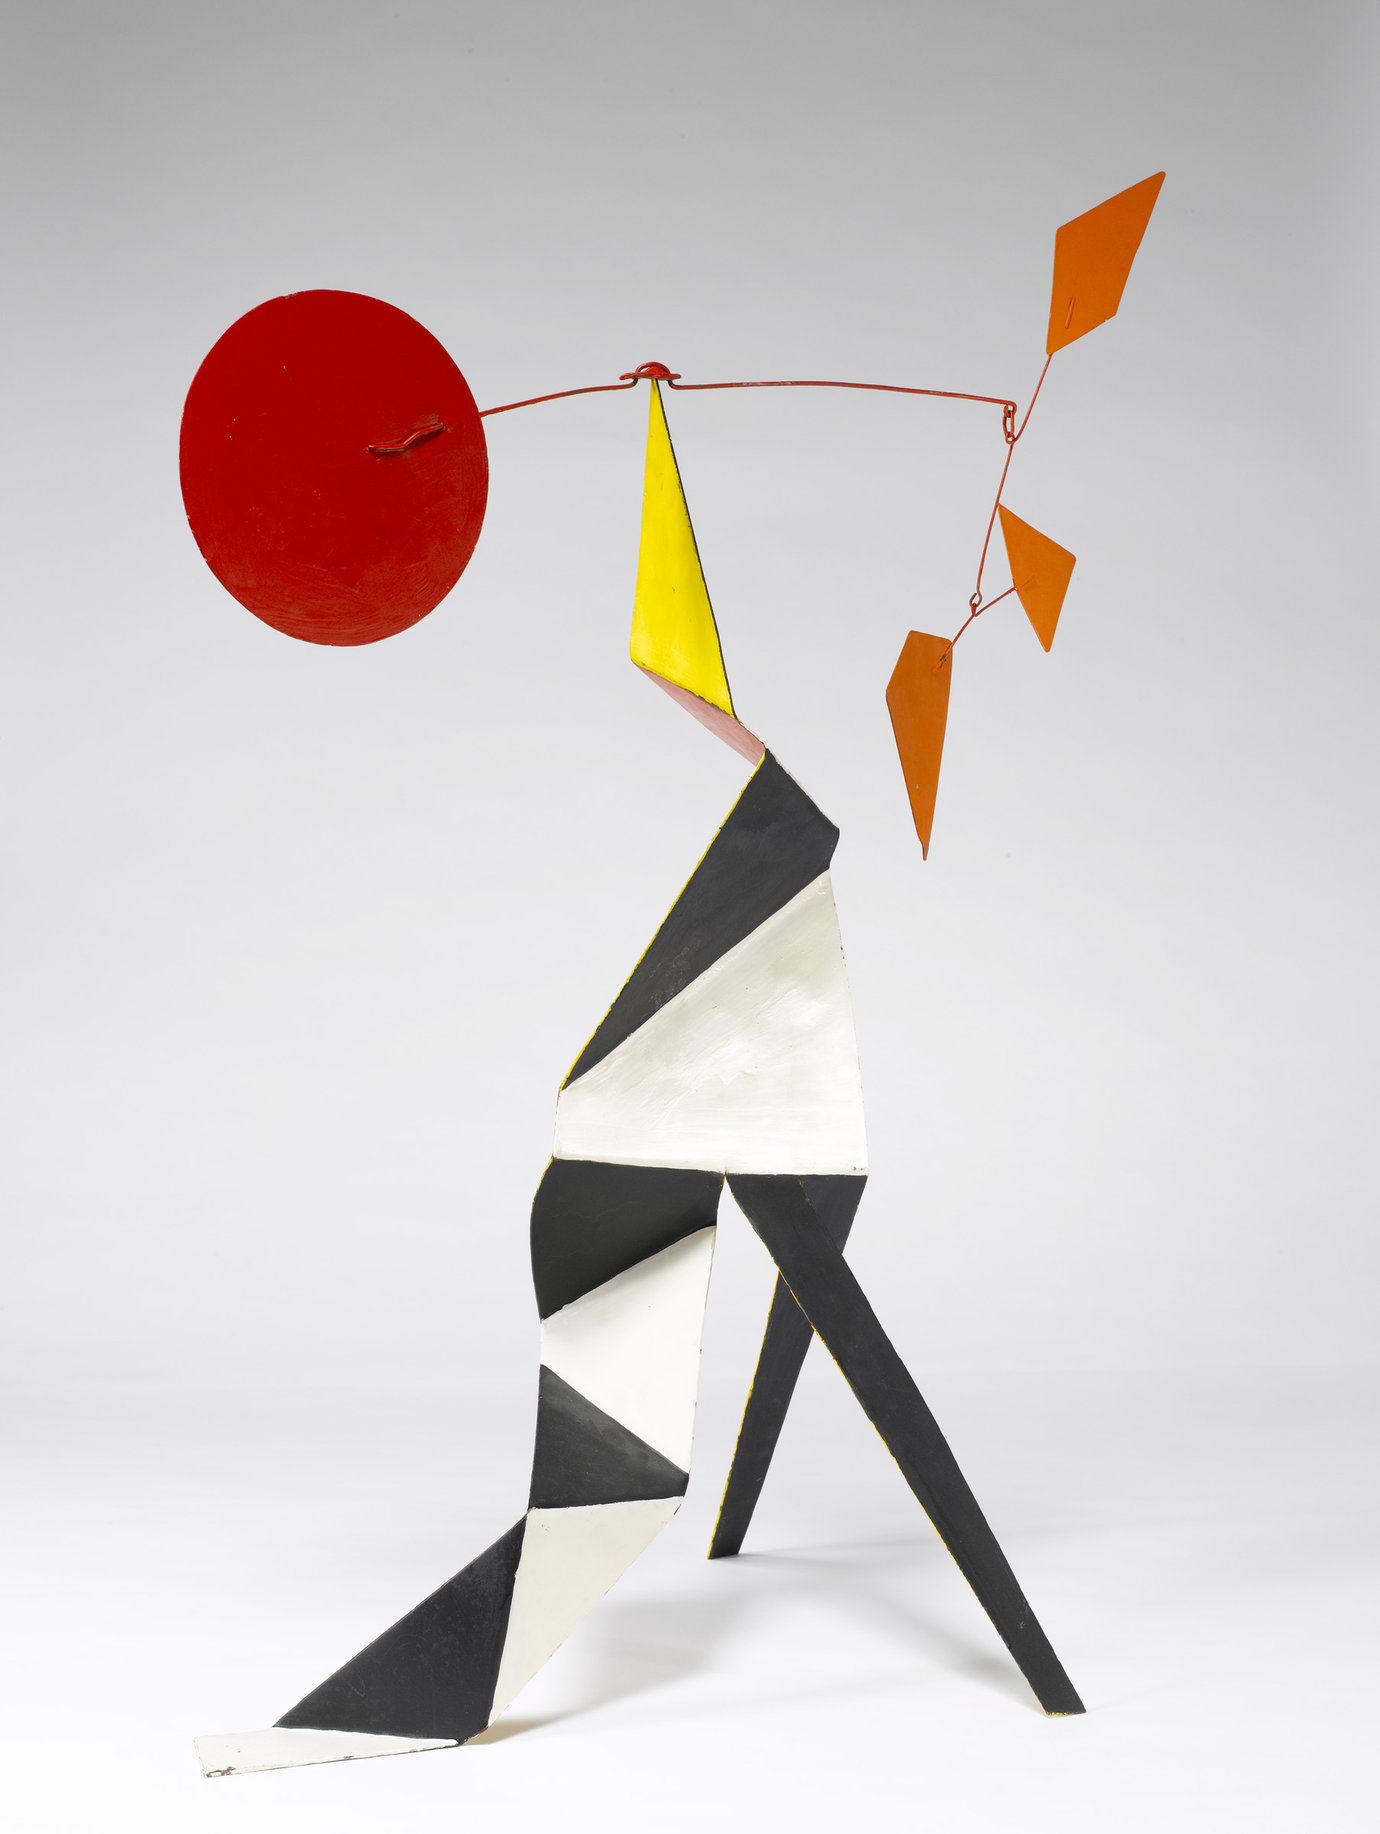 ", c. 1973. Sheet metal, wire and paint, 34"" x 26-1/2"" x 15-1/2"" (86.4 cm x 67.3 cm x 39.4 cm)."